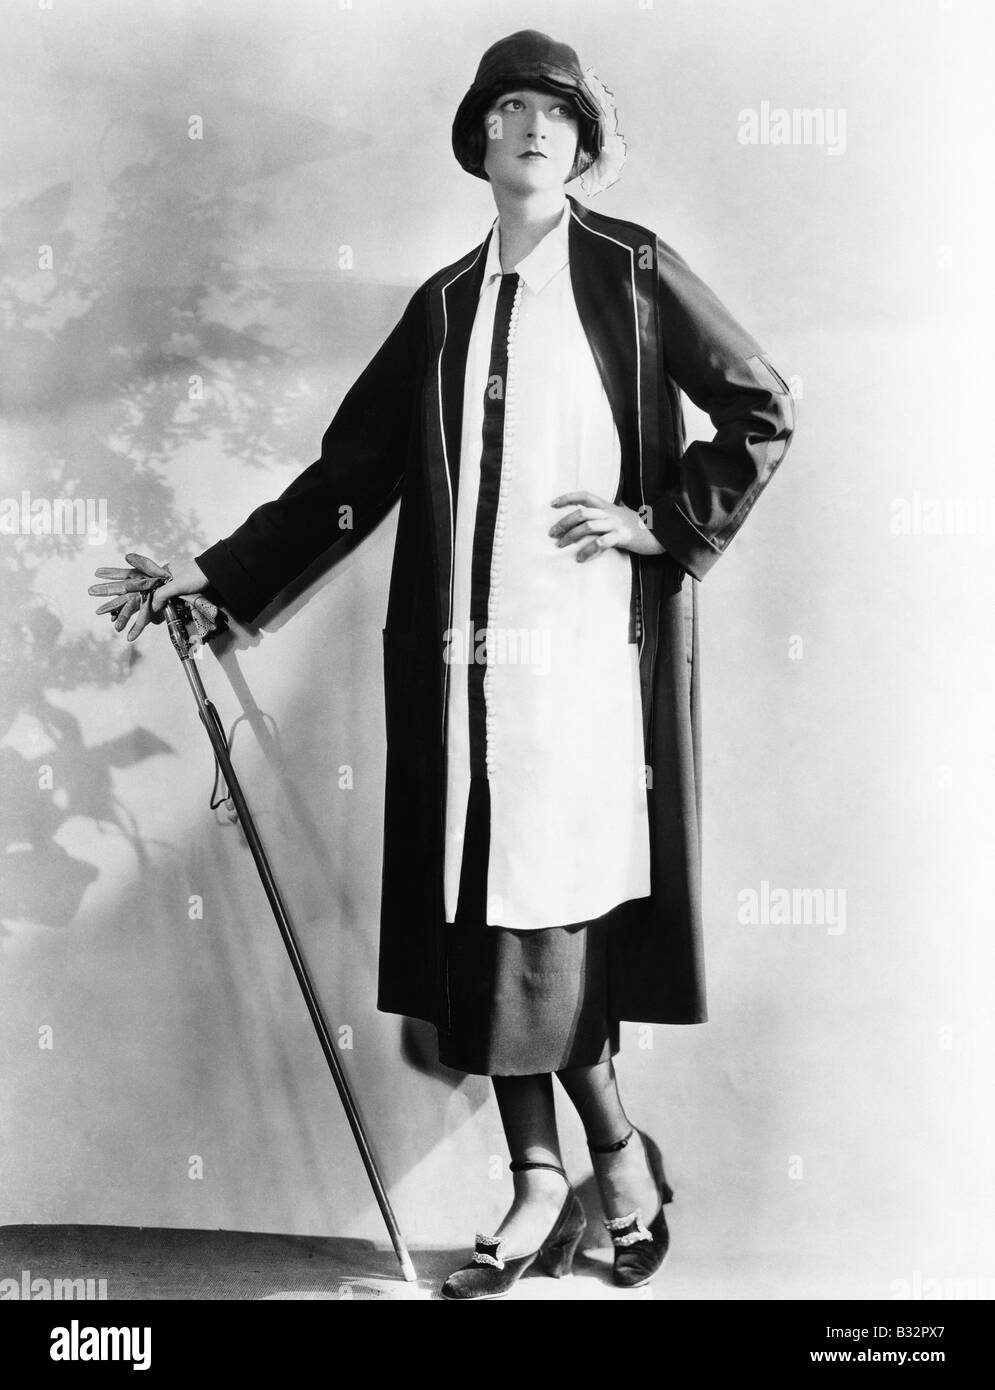 Portrait of woman with cane and gloves - Stock Image